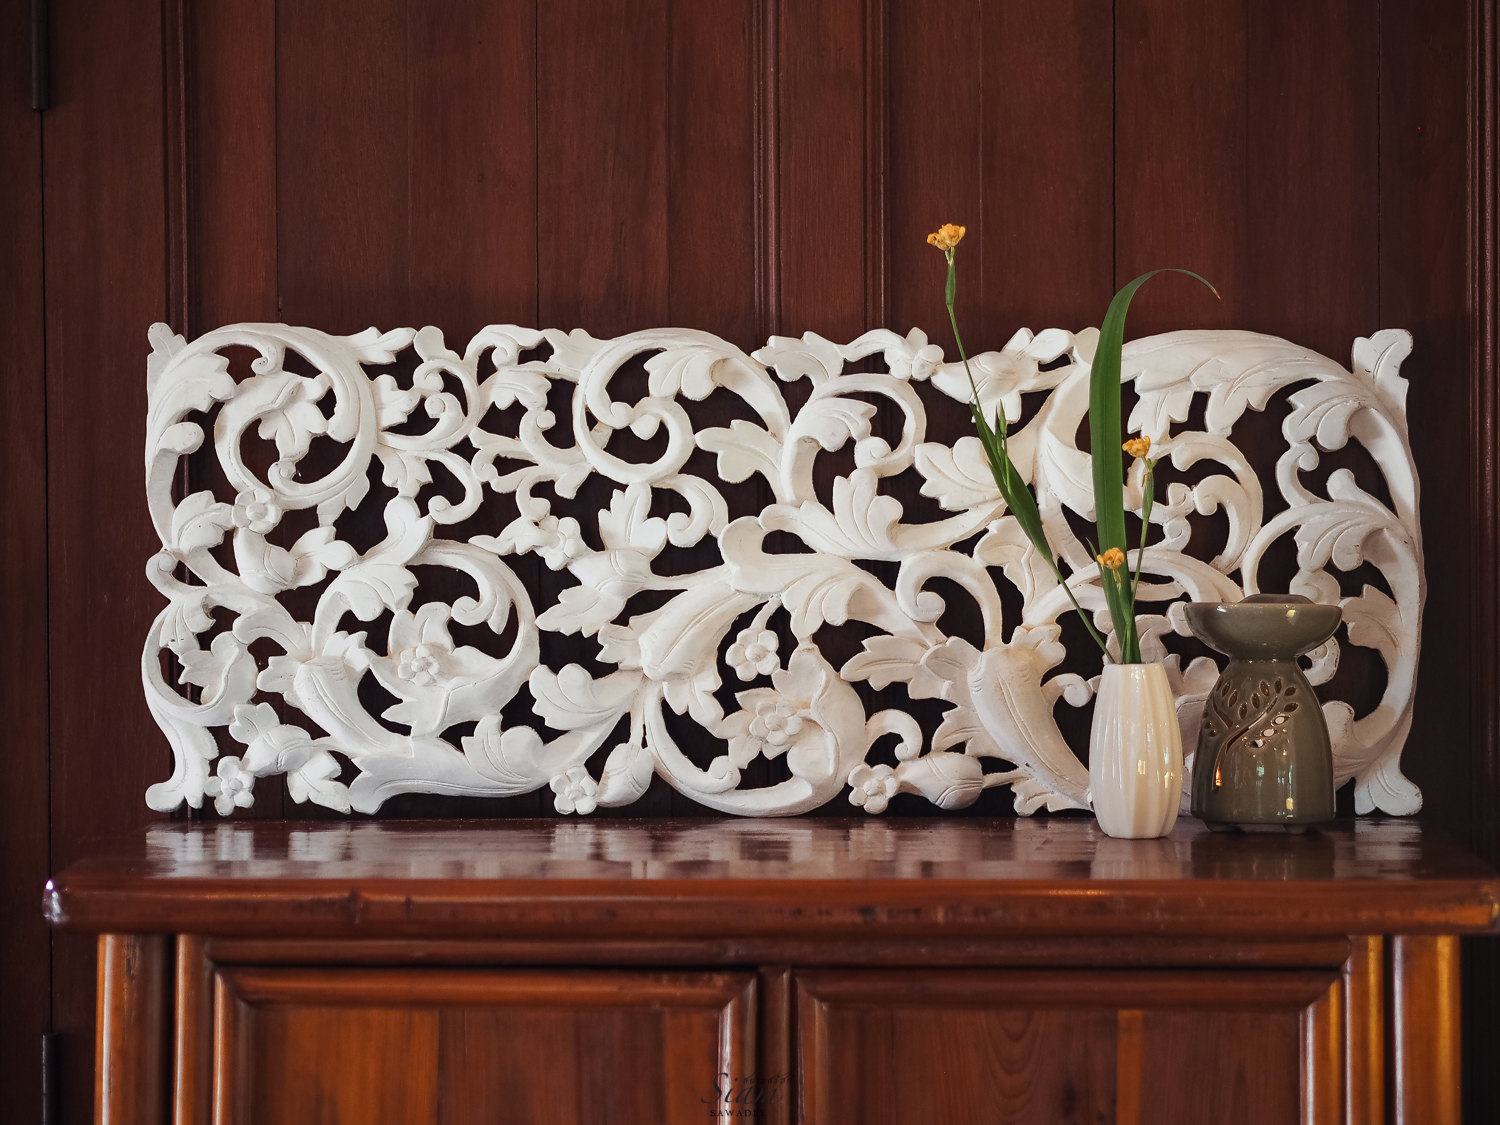 Wood Decorative Wall Art Buy Tropical Floral Curving Wooden Carving Wall Hanging Online